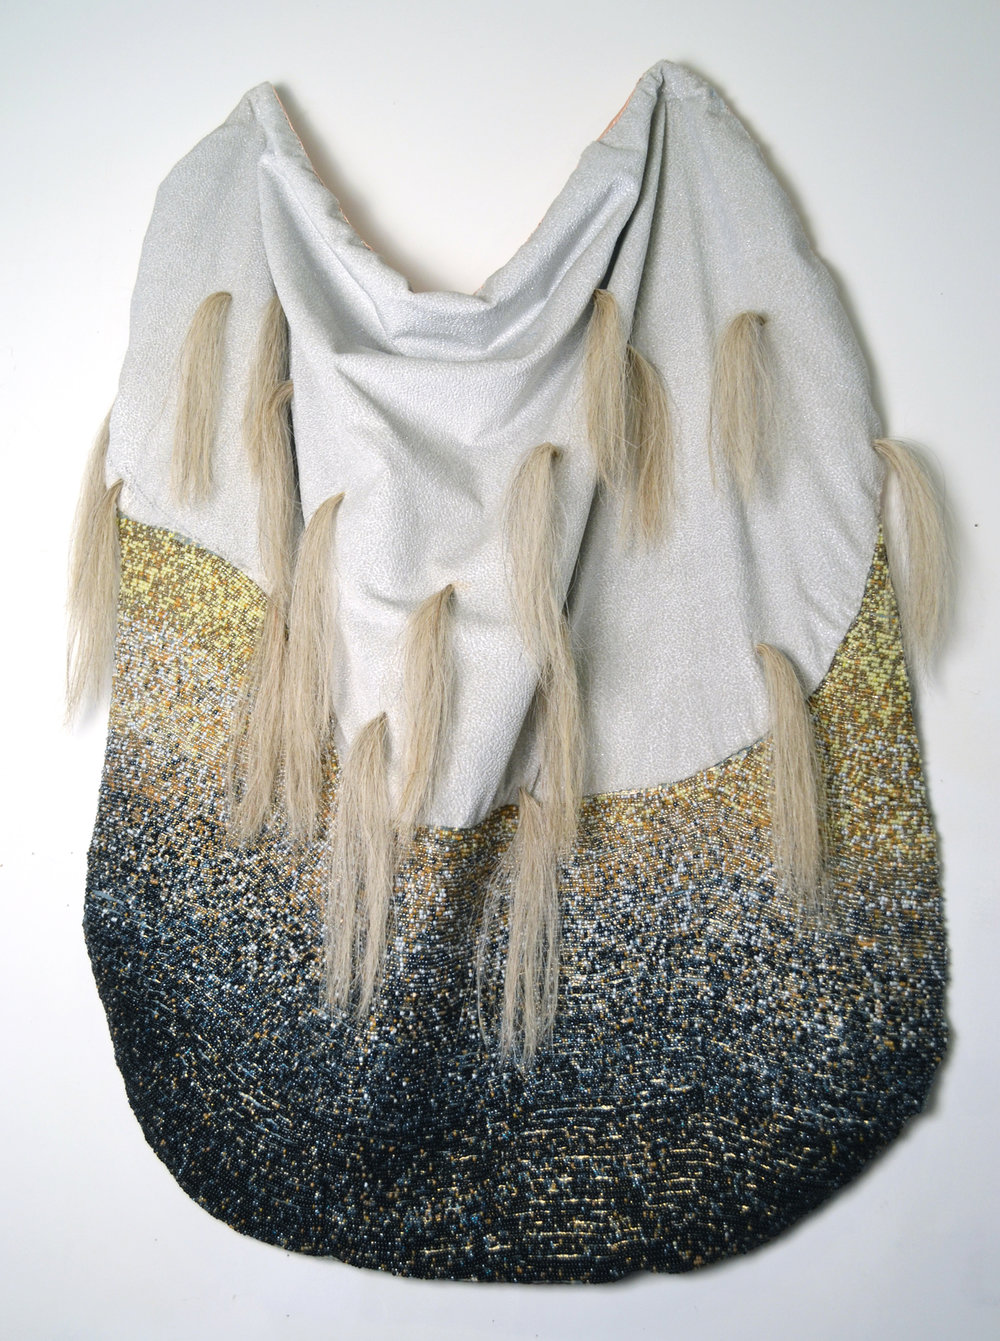 Protective Cape , 2014, Fabric, thread, glass beads, and horsehair, 48.5 x 34 x 6""